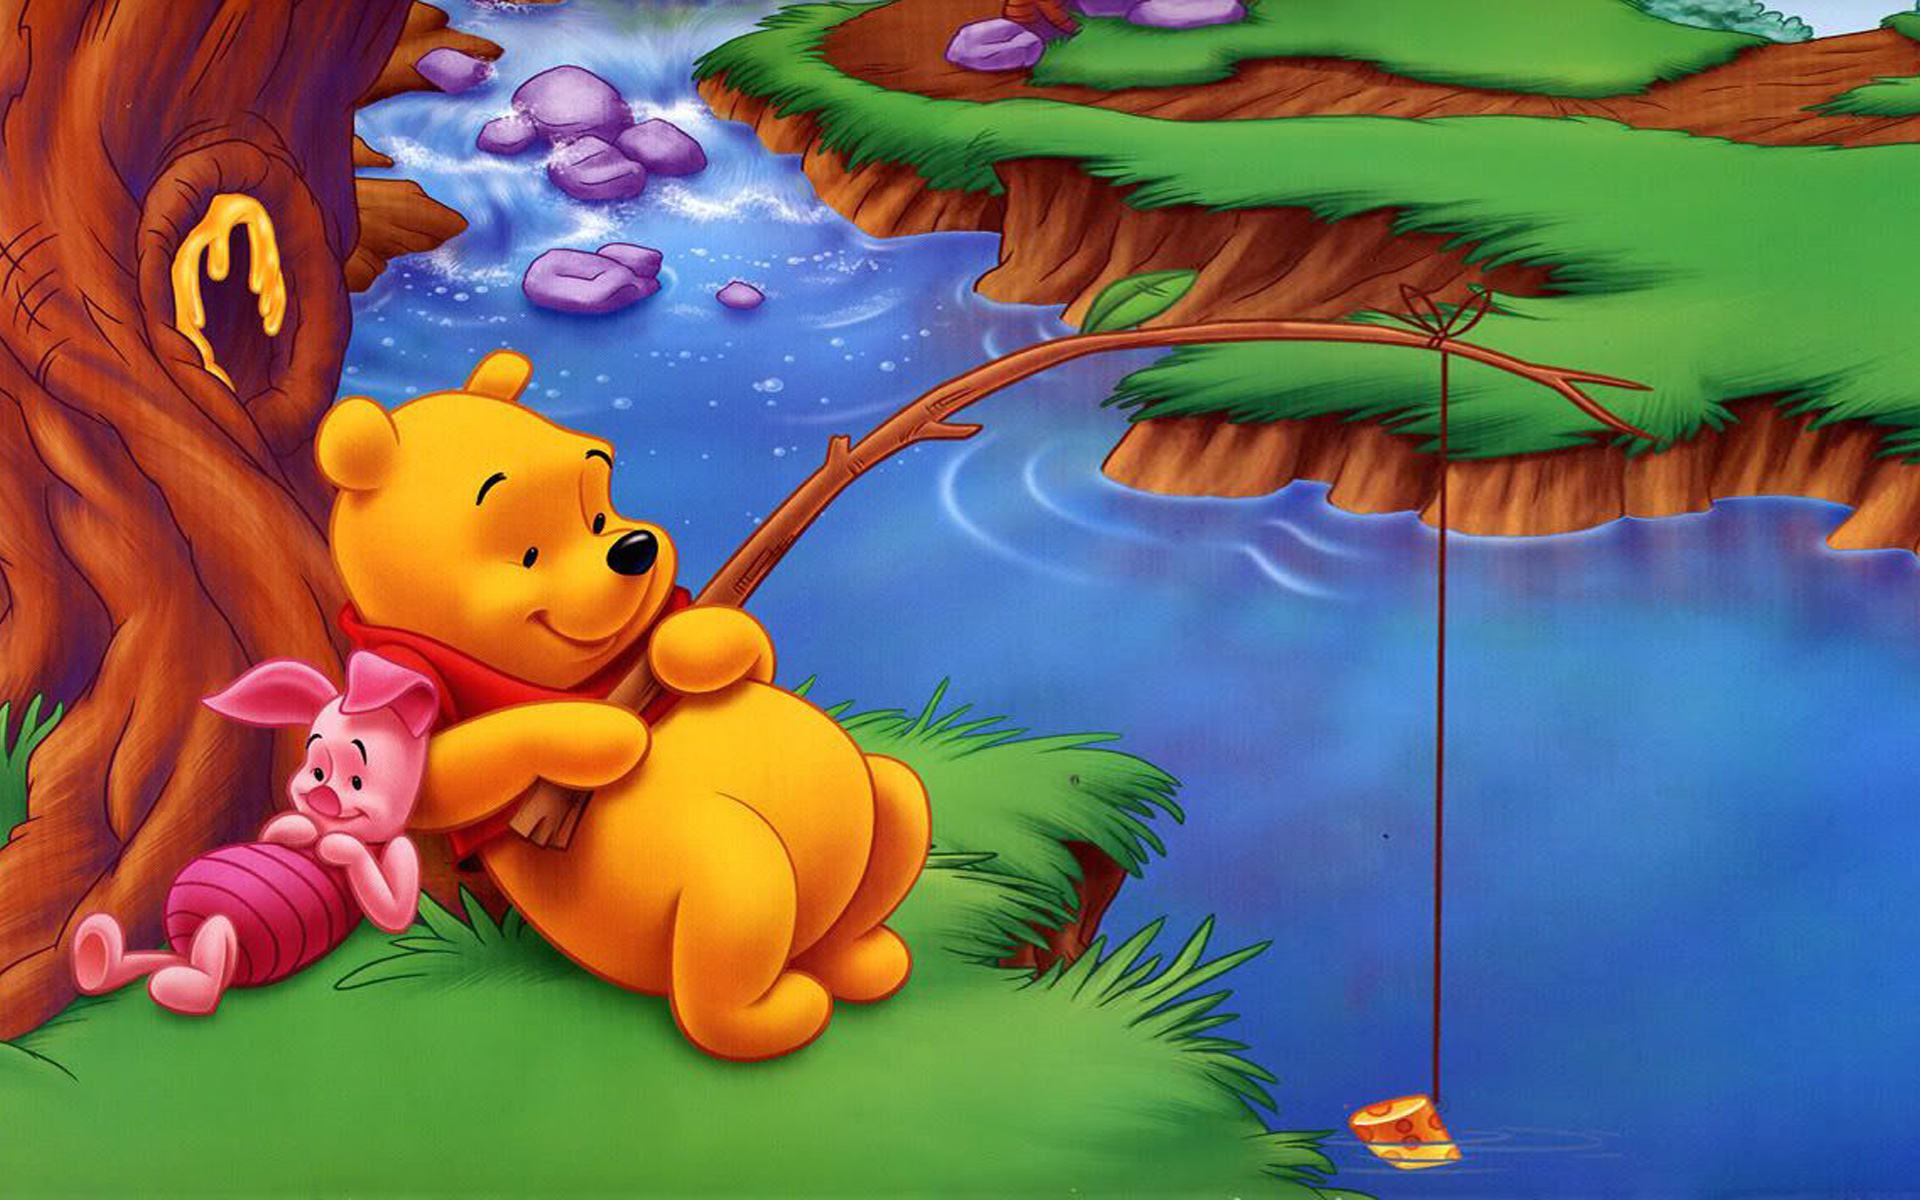 Cute Live Wallpapers Free Download For Android Winnie The Pooh And Piglet River Fishing Of Fish Cartoon